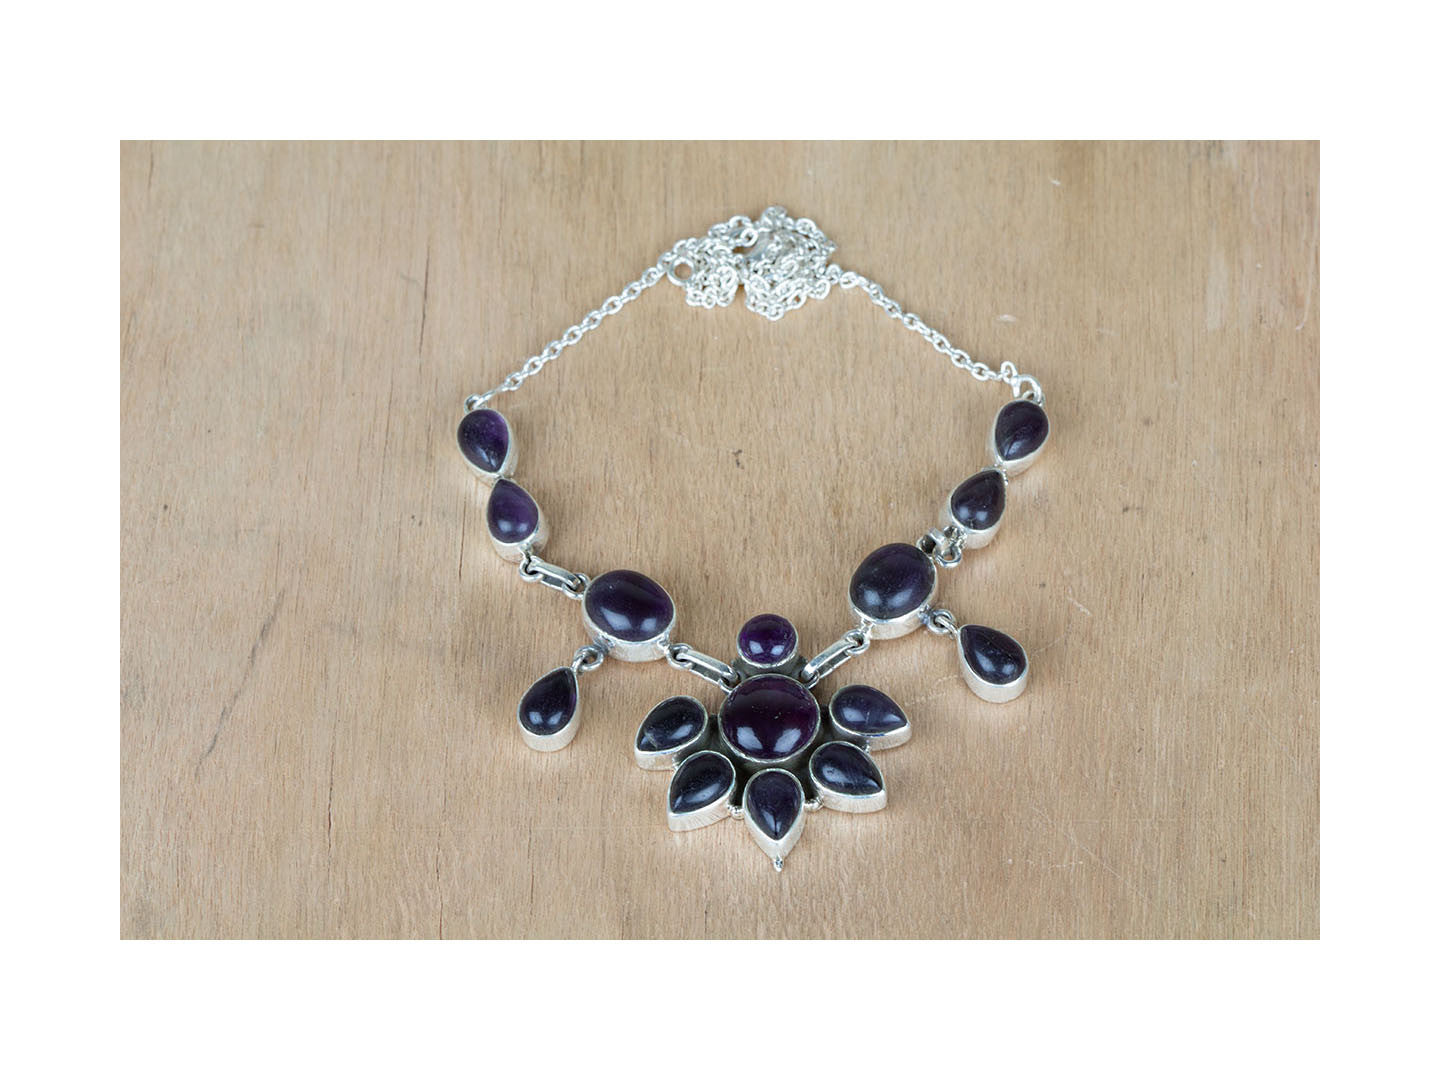 Latest Handmade Amethyst Gemstone 925 Silver Sterling Necklace